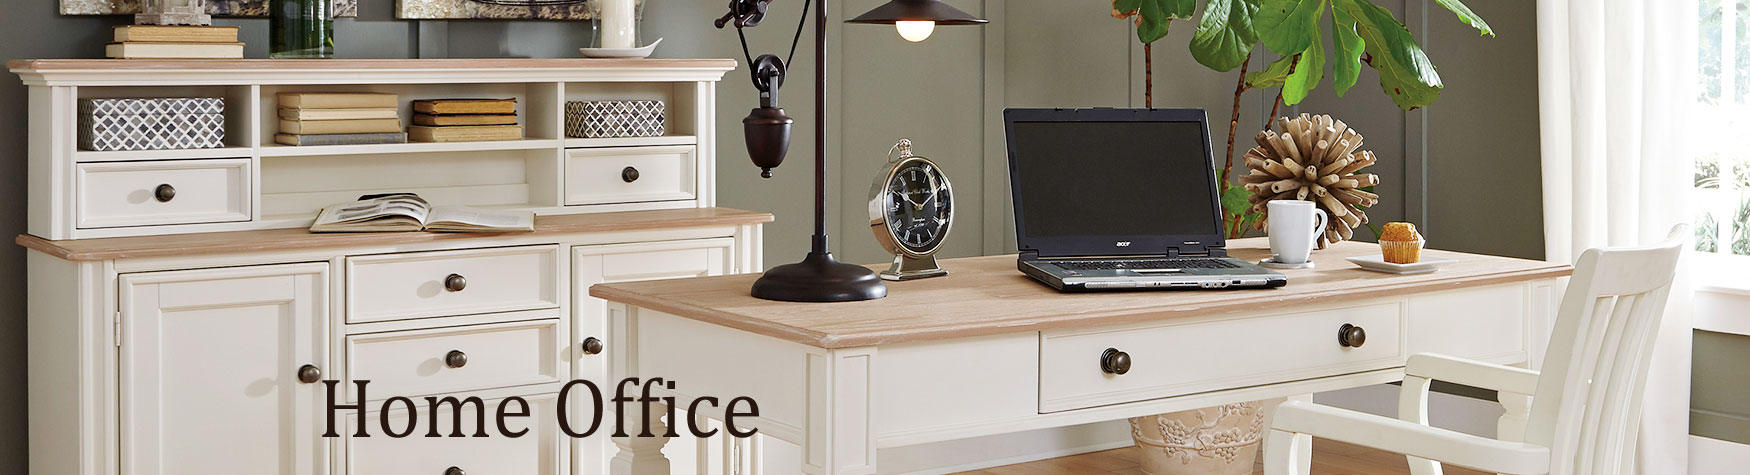 home-office-banner.jpg